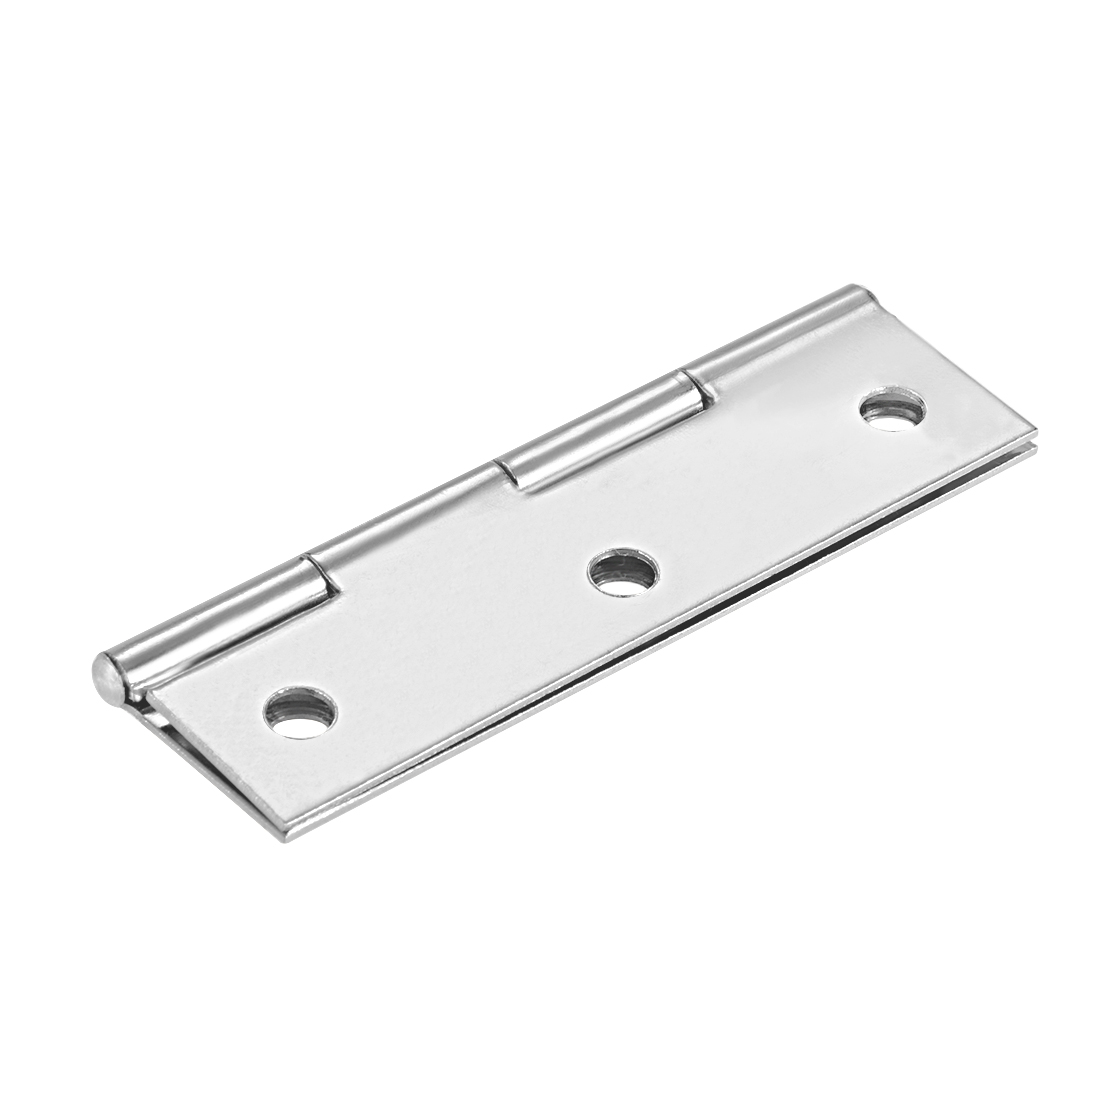 "Uxcell 2.6""  Hinge Silver Door Cabinet Hinges Fittings Brushed Chrome Plain 10pcs - image 1 de 6"